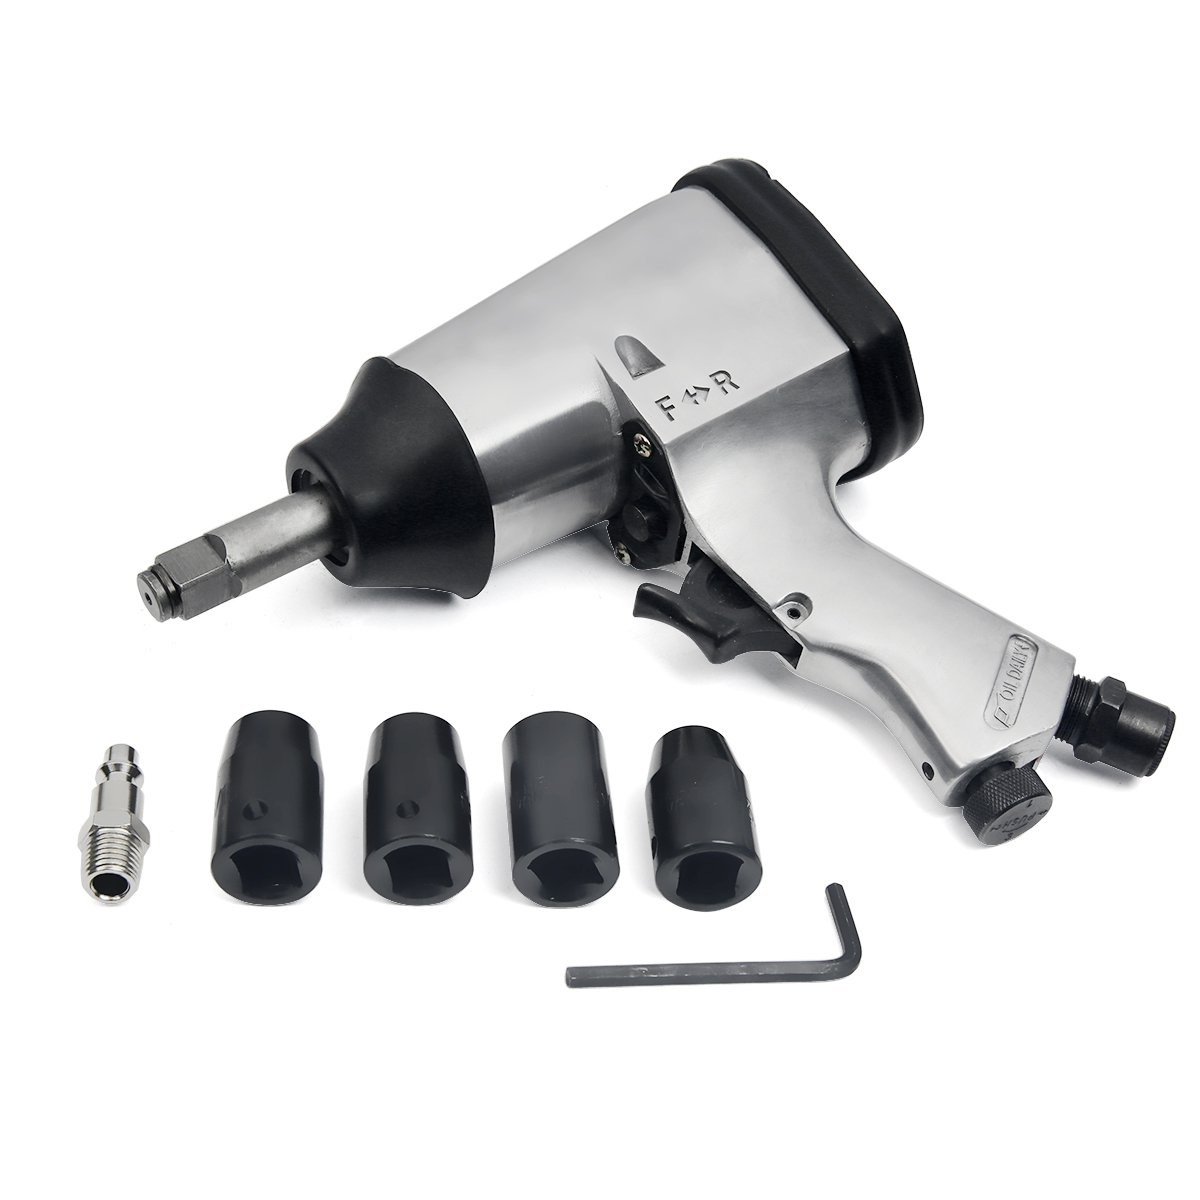 1/2'' LG-Shank Air Impact Wrench